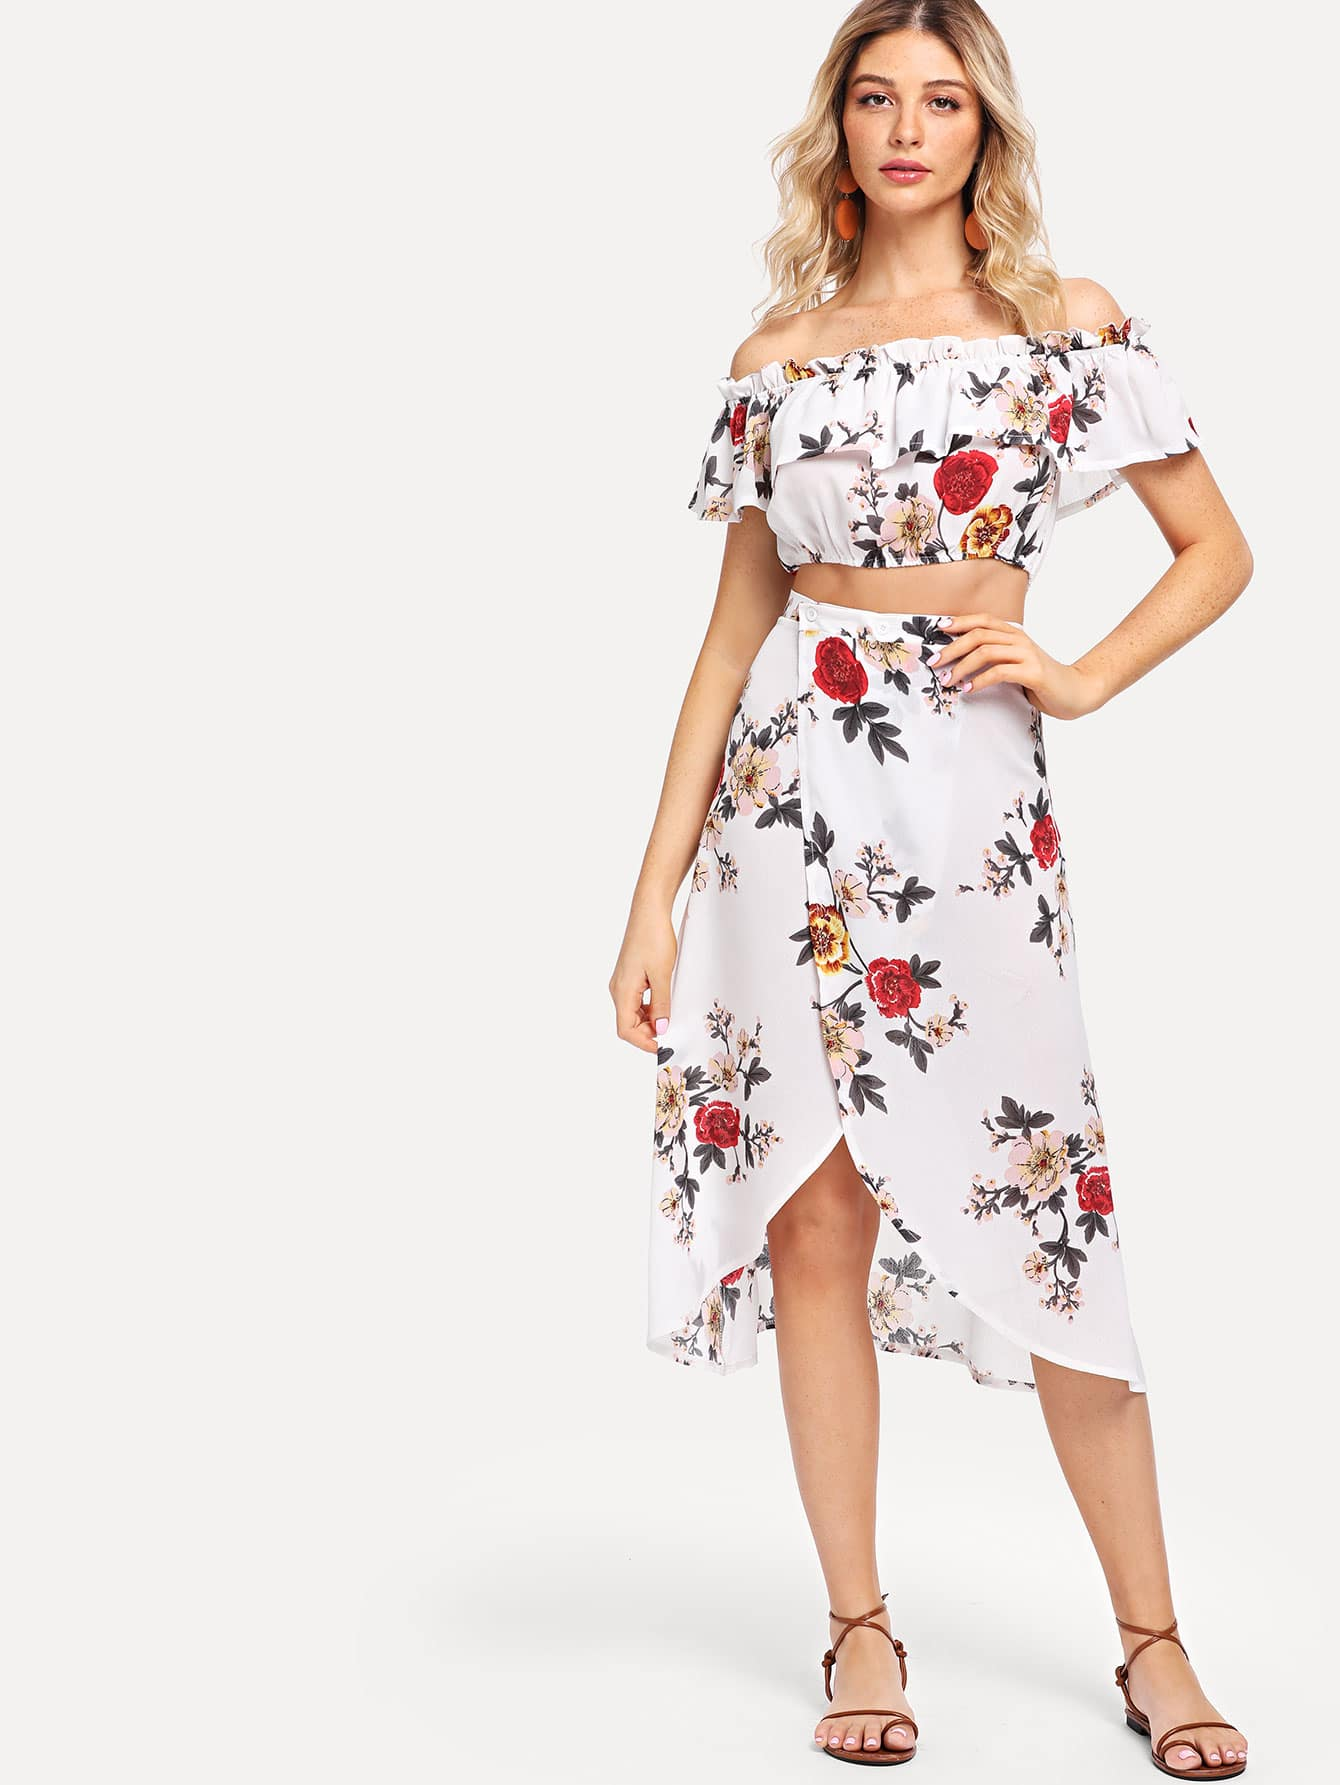 Off Shoulder Ruffle Floral Top With Skirt mesh shoulder ruffle floral top